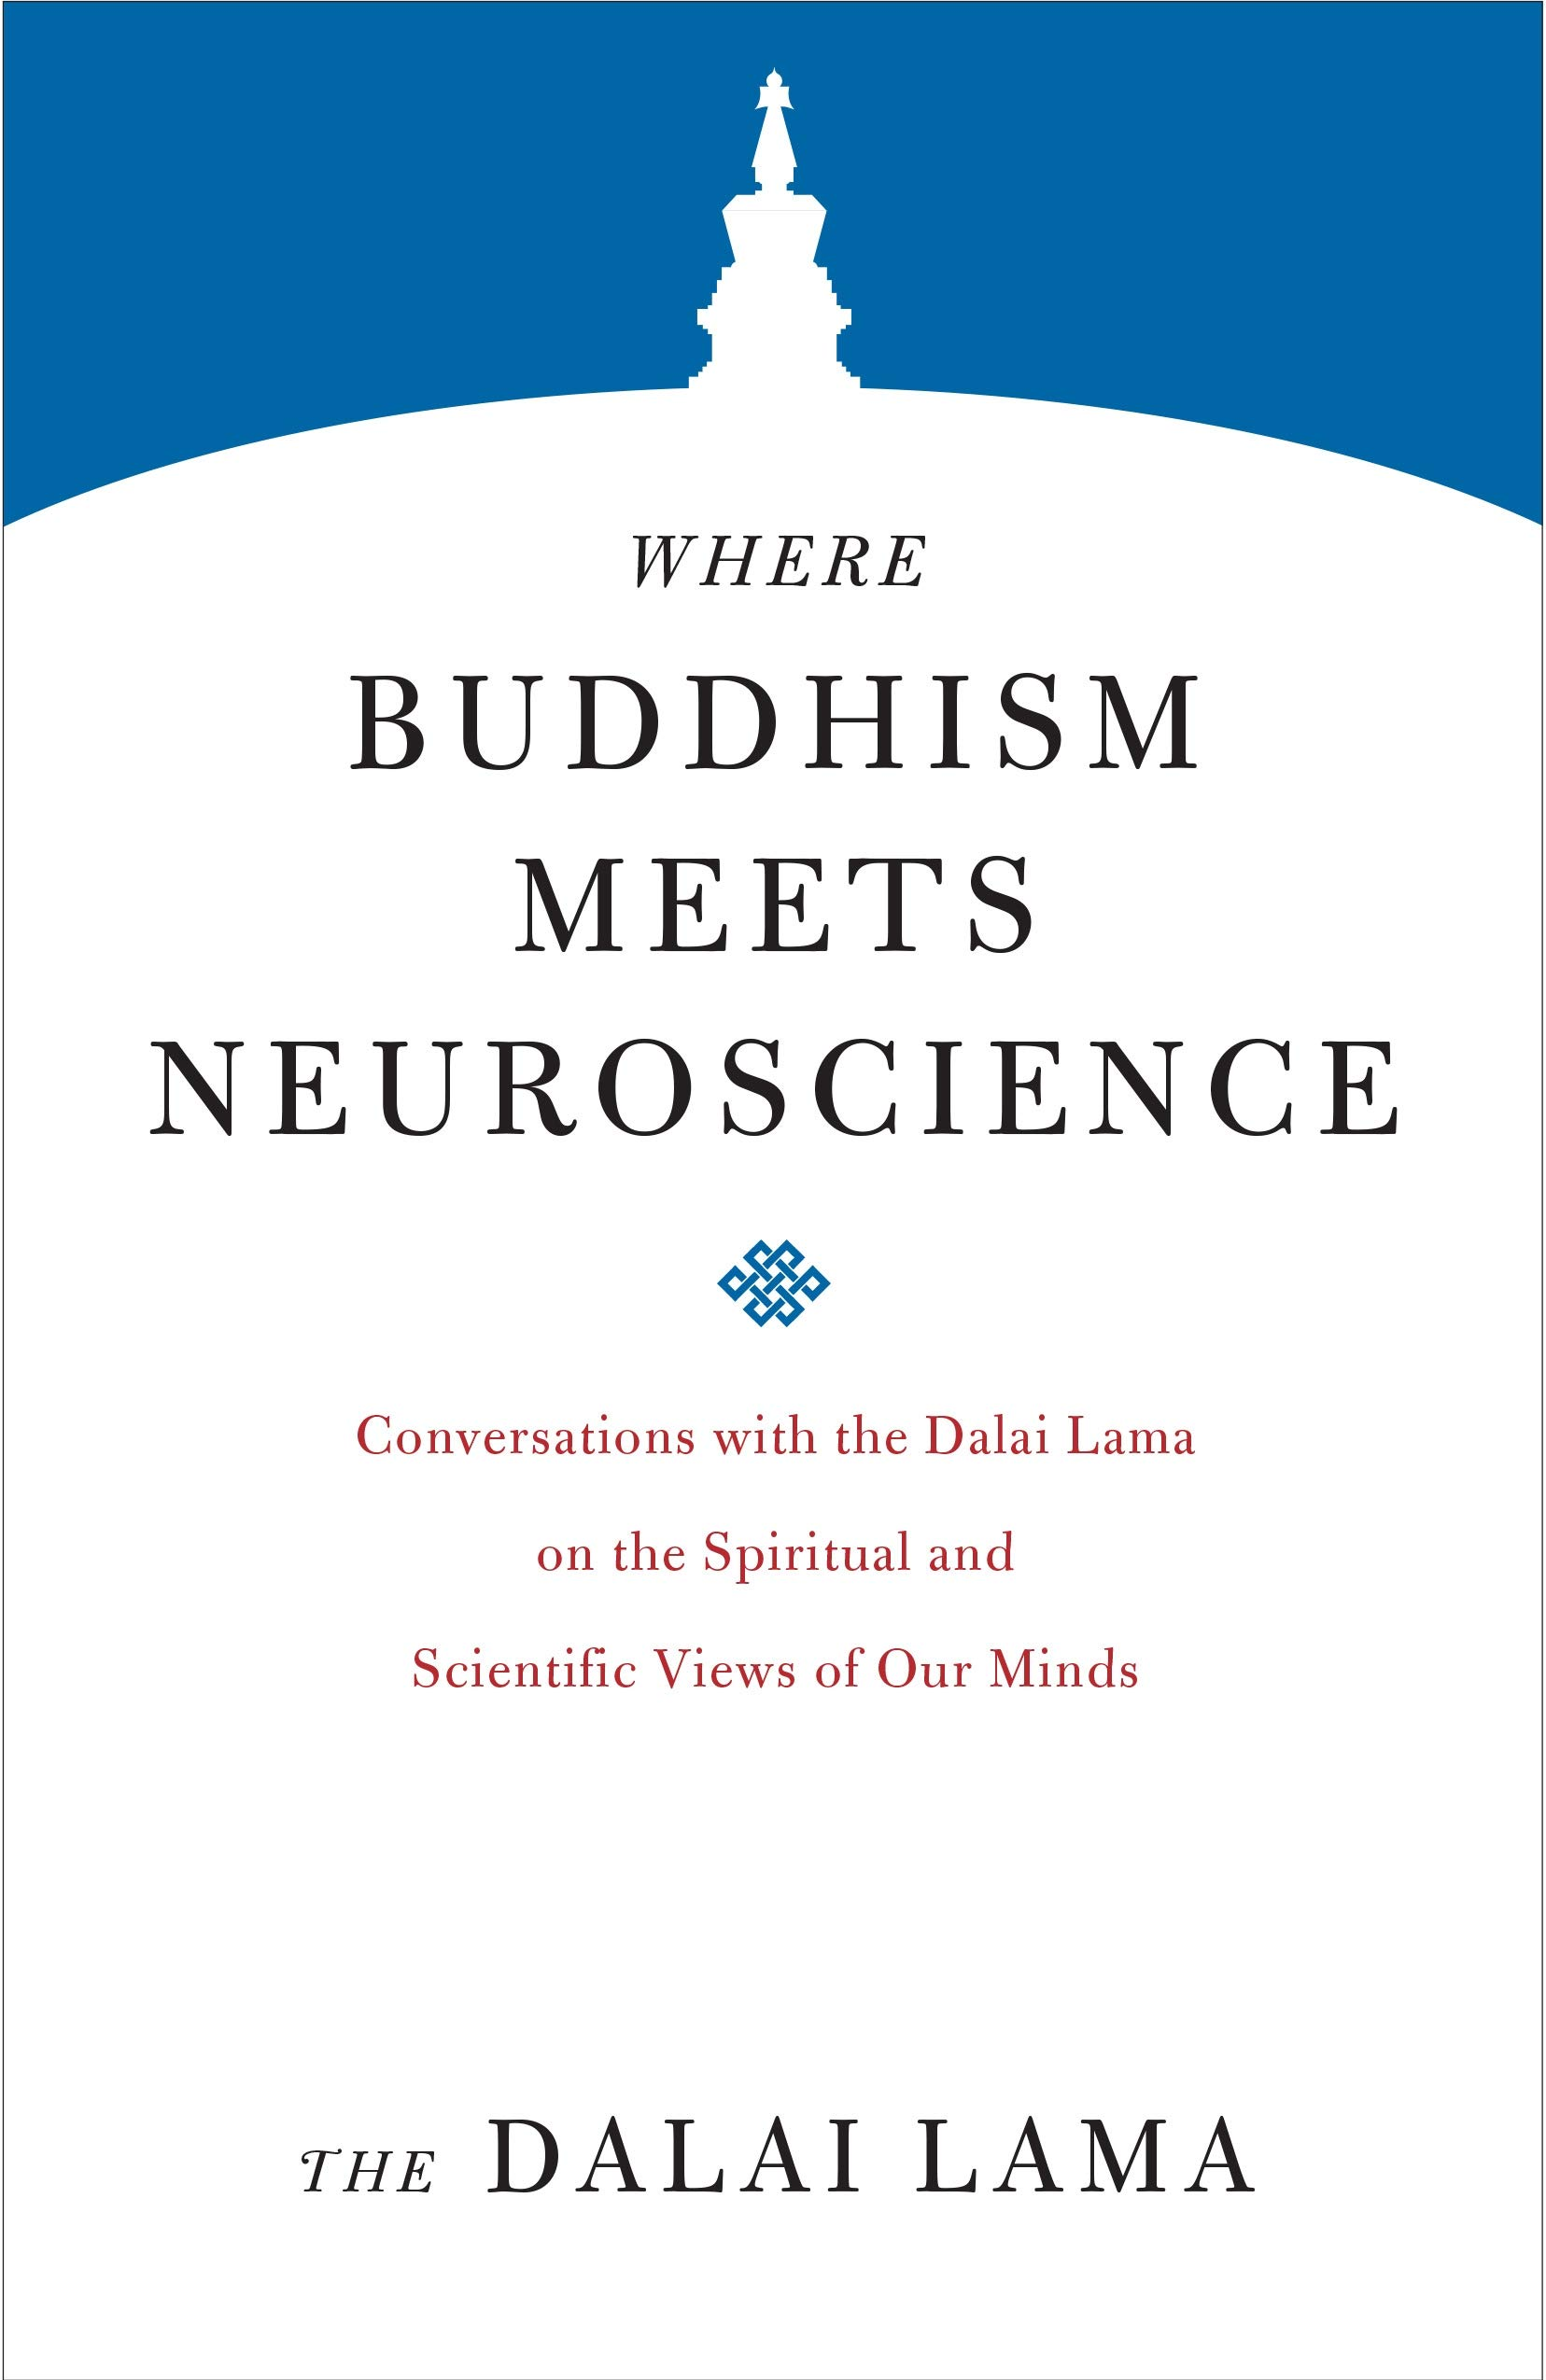 Where Buddhism Meets Neuroscience: Conversations with the Dalai Lama